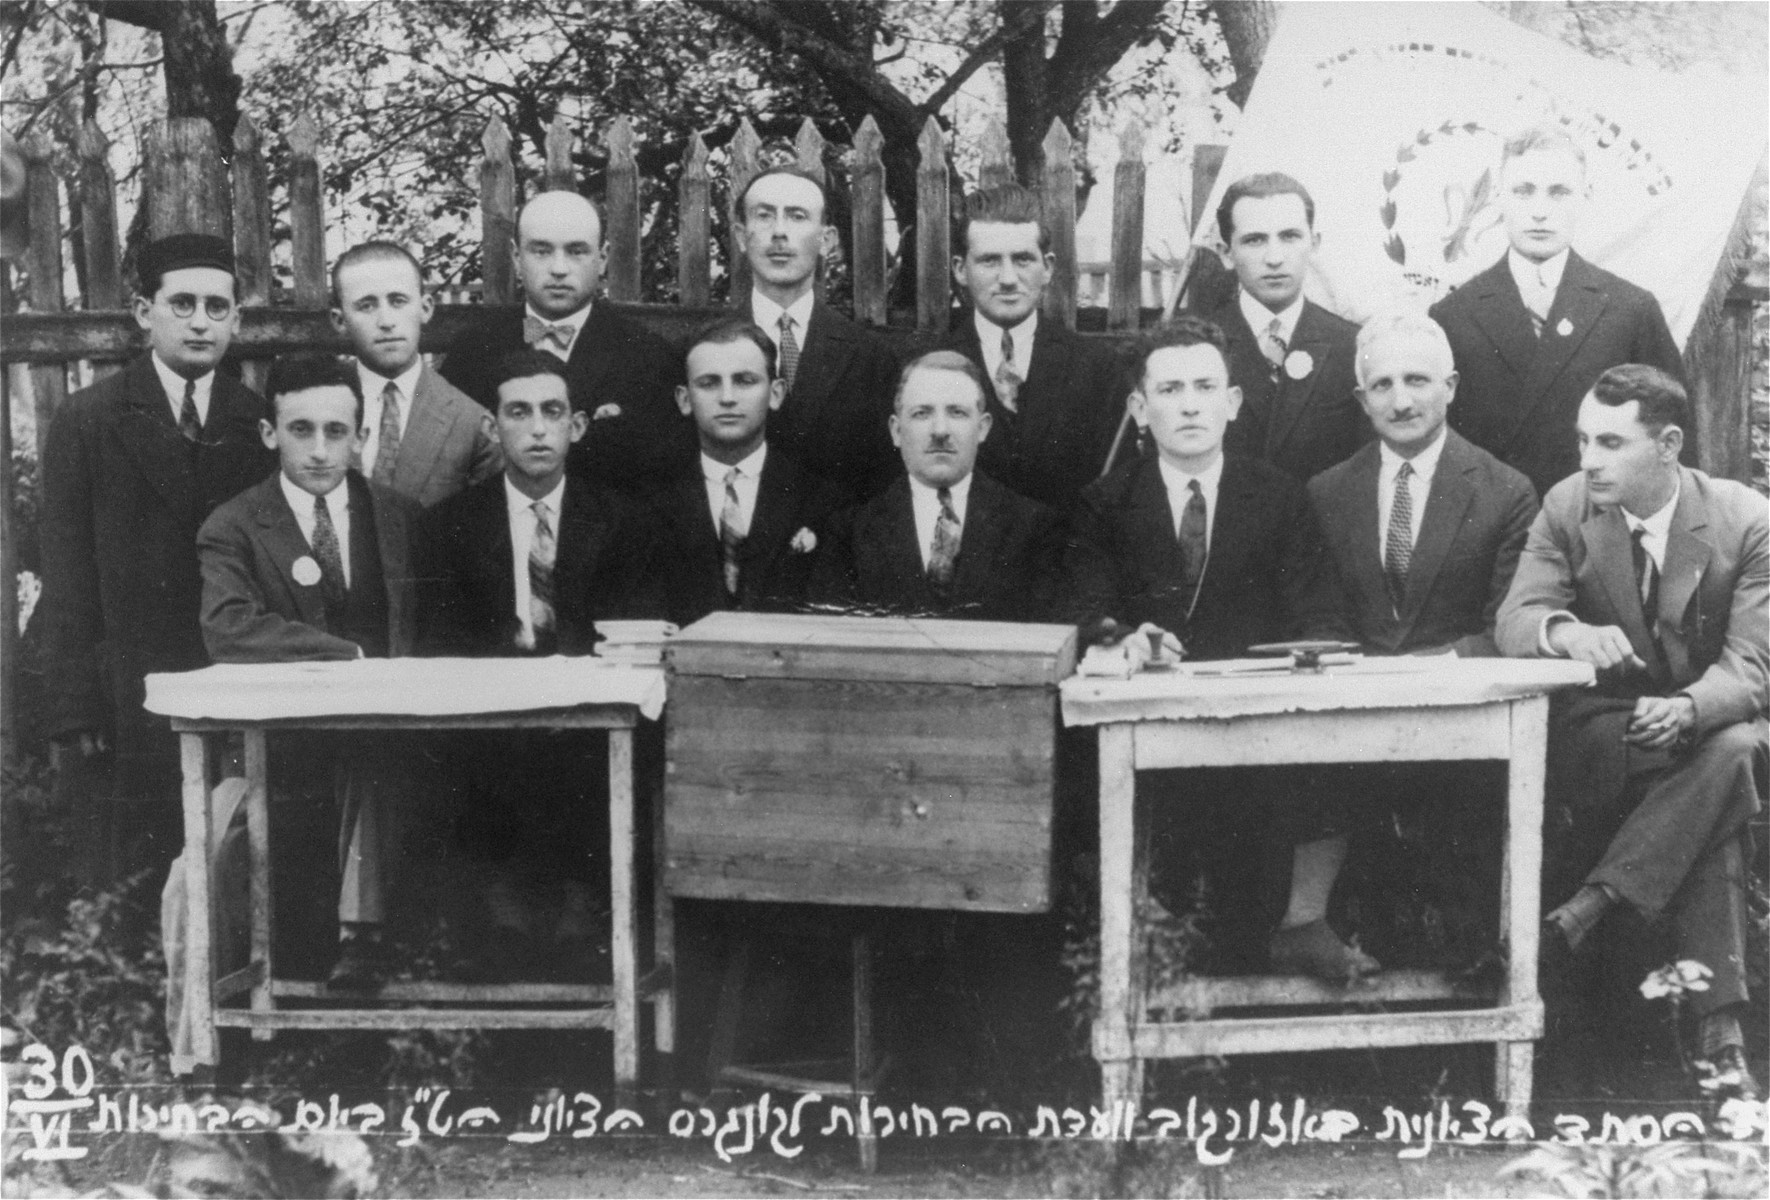 Group portrait of members of the Ozorkow election committee for the 16th Zionist Congress.   Among those pictured are: Mayer Zabner, the donor's uncle (front row, second from the right), Mr. Feldman (front row, right), Mr. Winter (front row, center), Mr. Rosenblum (front row, left).